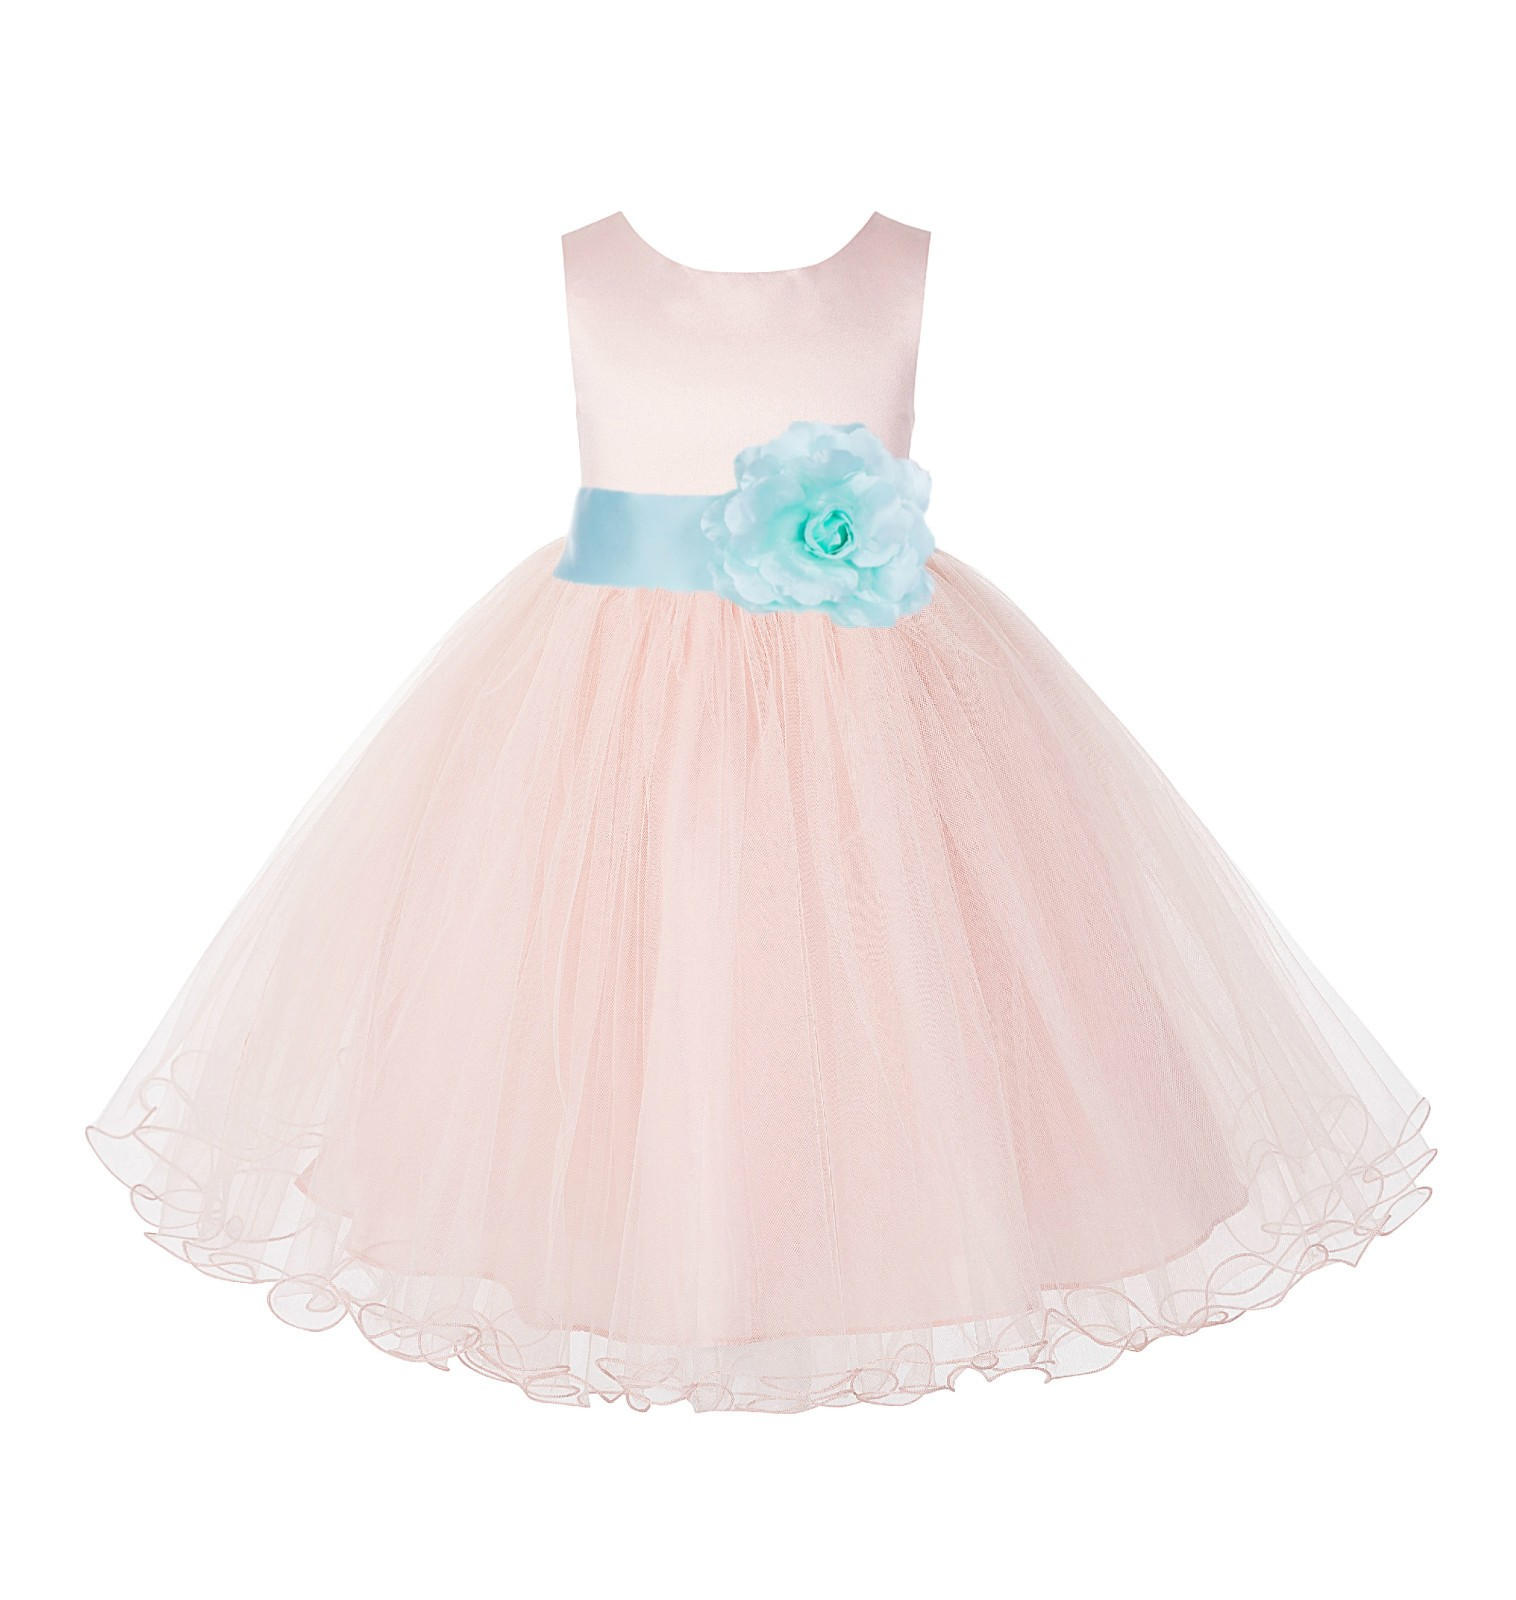 Blush Pink / Mint Tulle Rattail Edge Flower Girl Dress Pageant Recital 829S